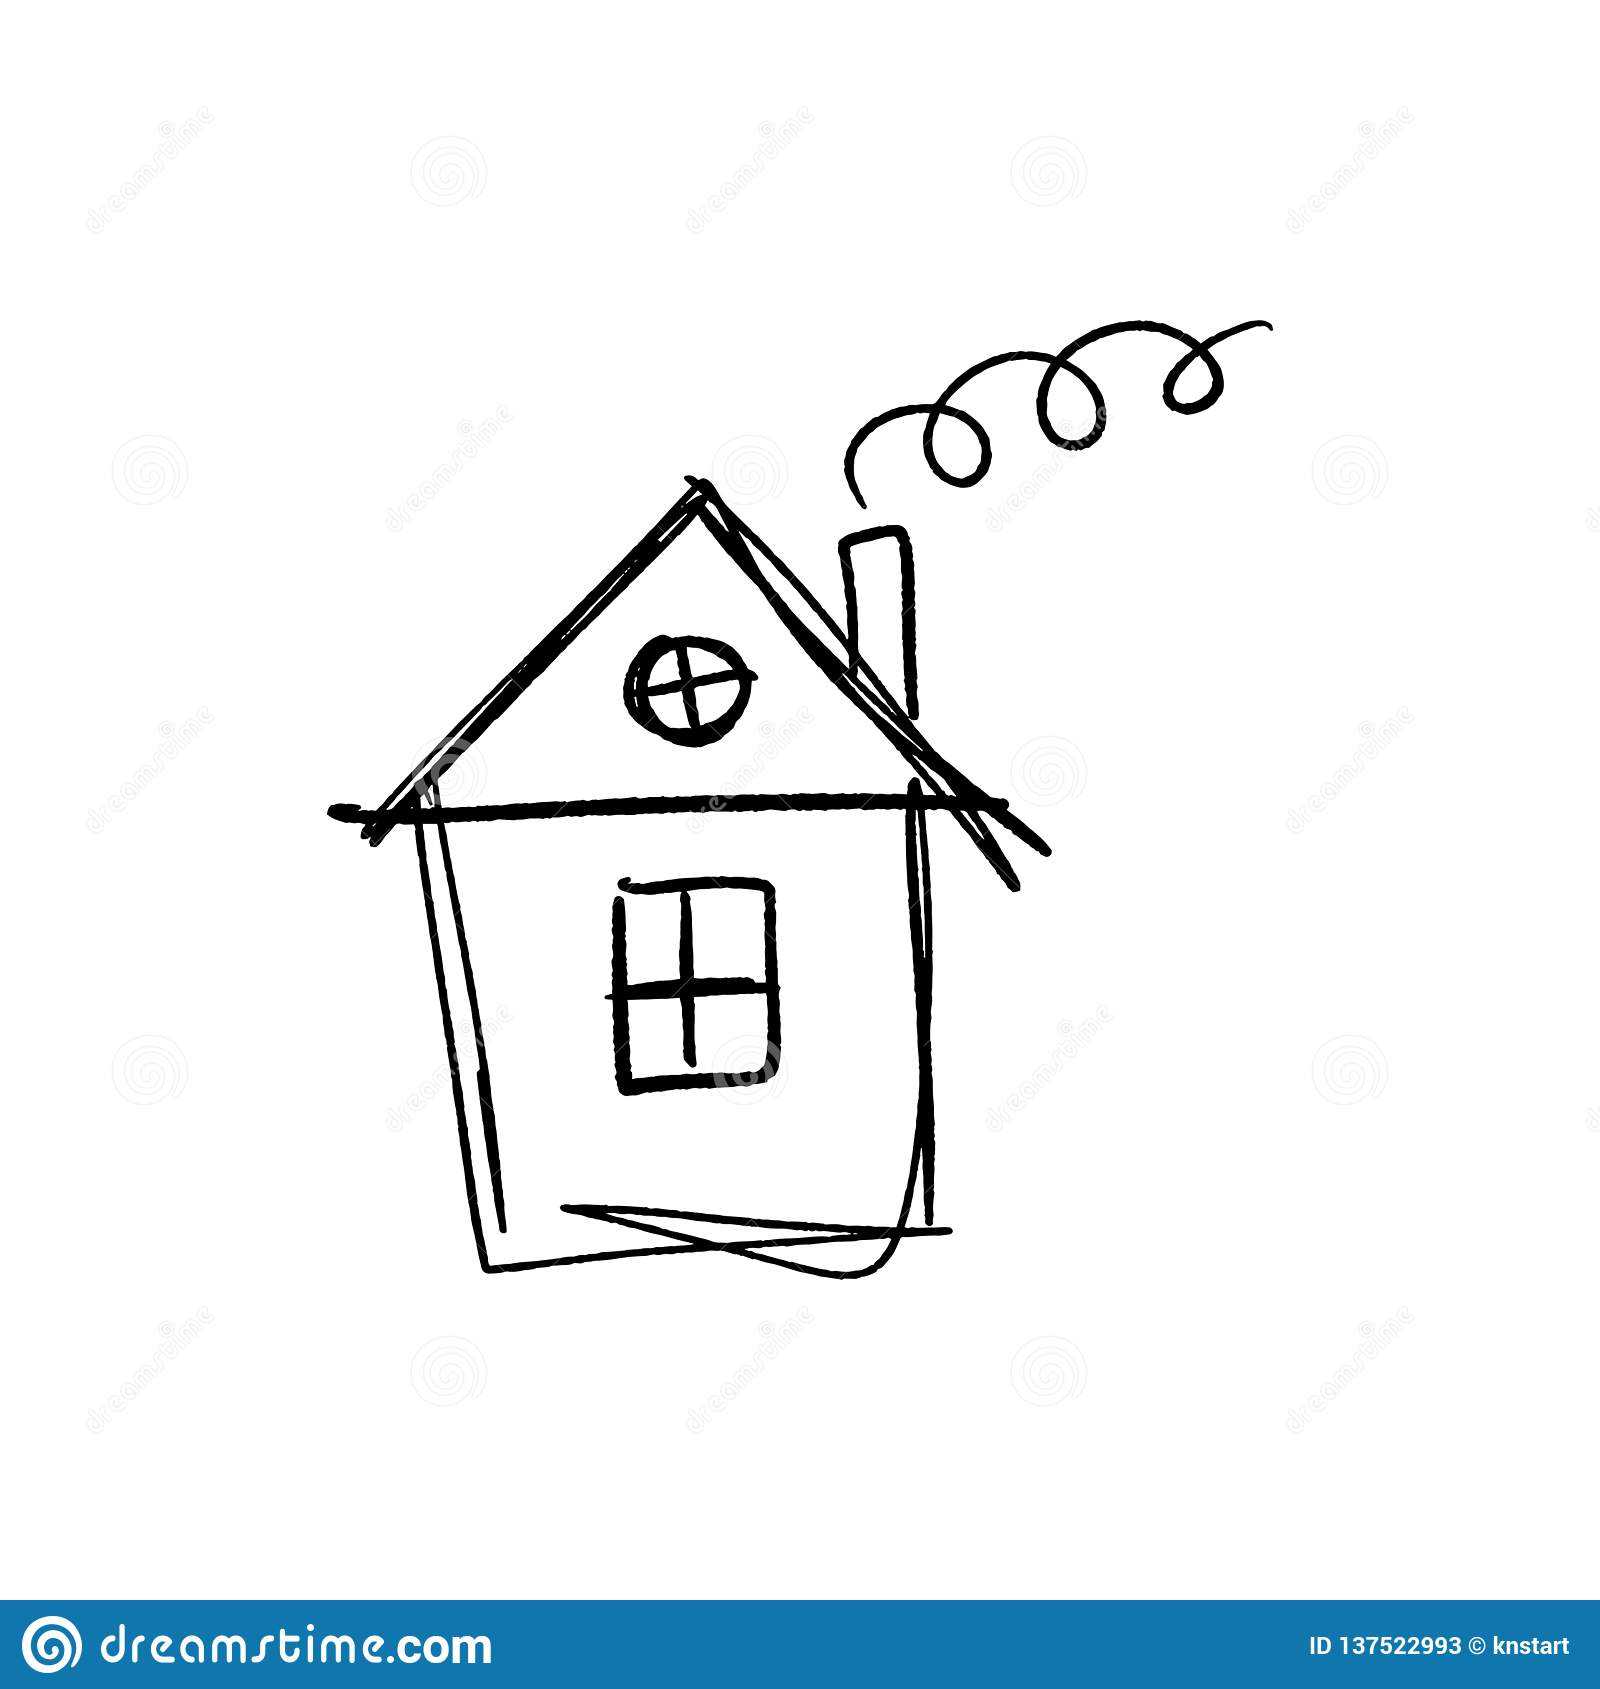 Simple House Sketch Stock Illustrations 6 464 Simple House Sketch Stock Illustrations Vectors Clipart Dreamstime